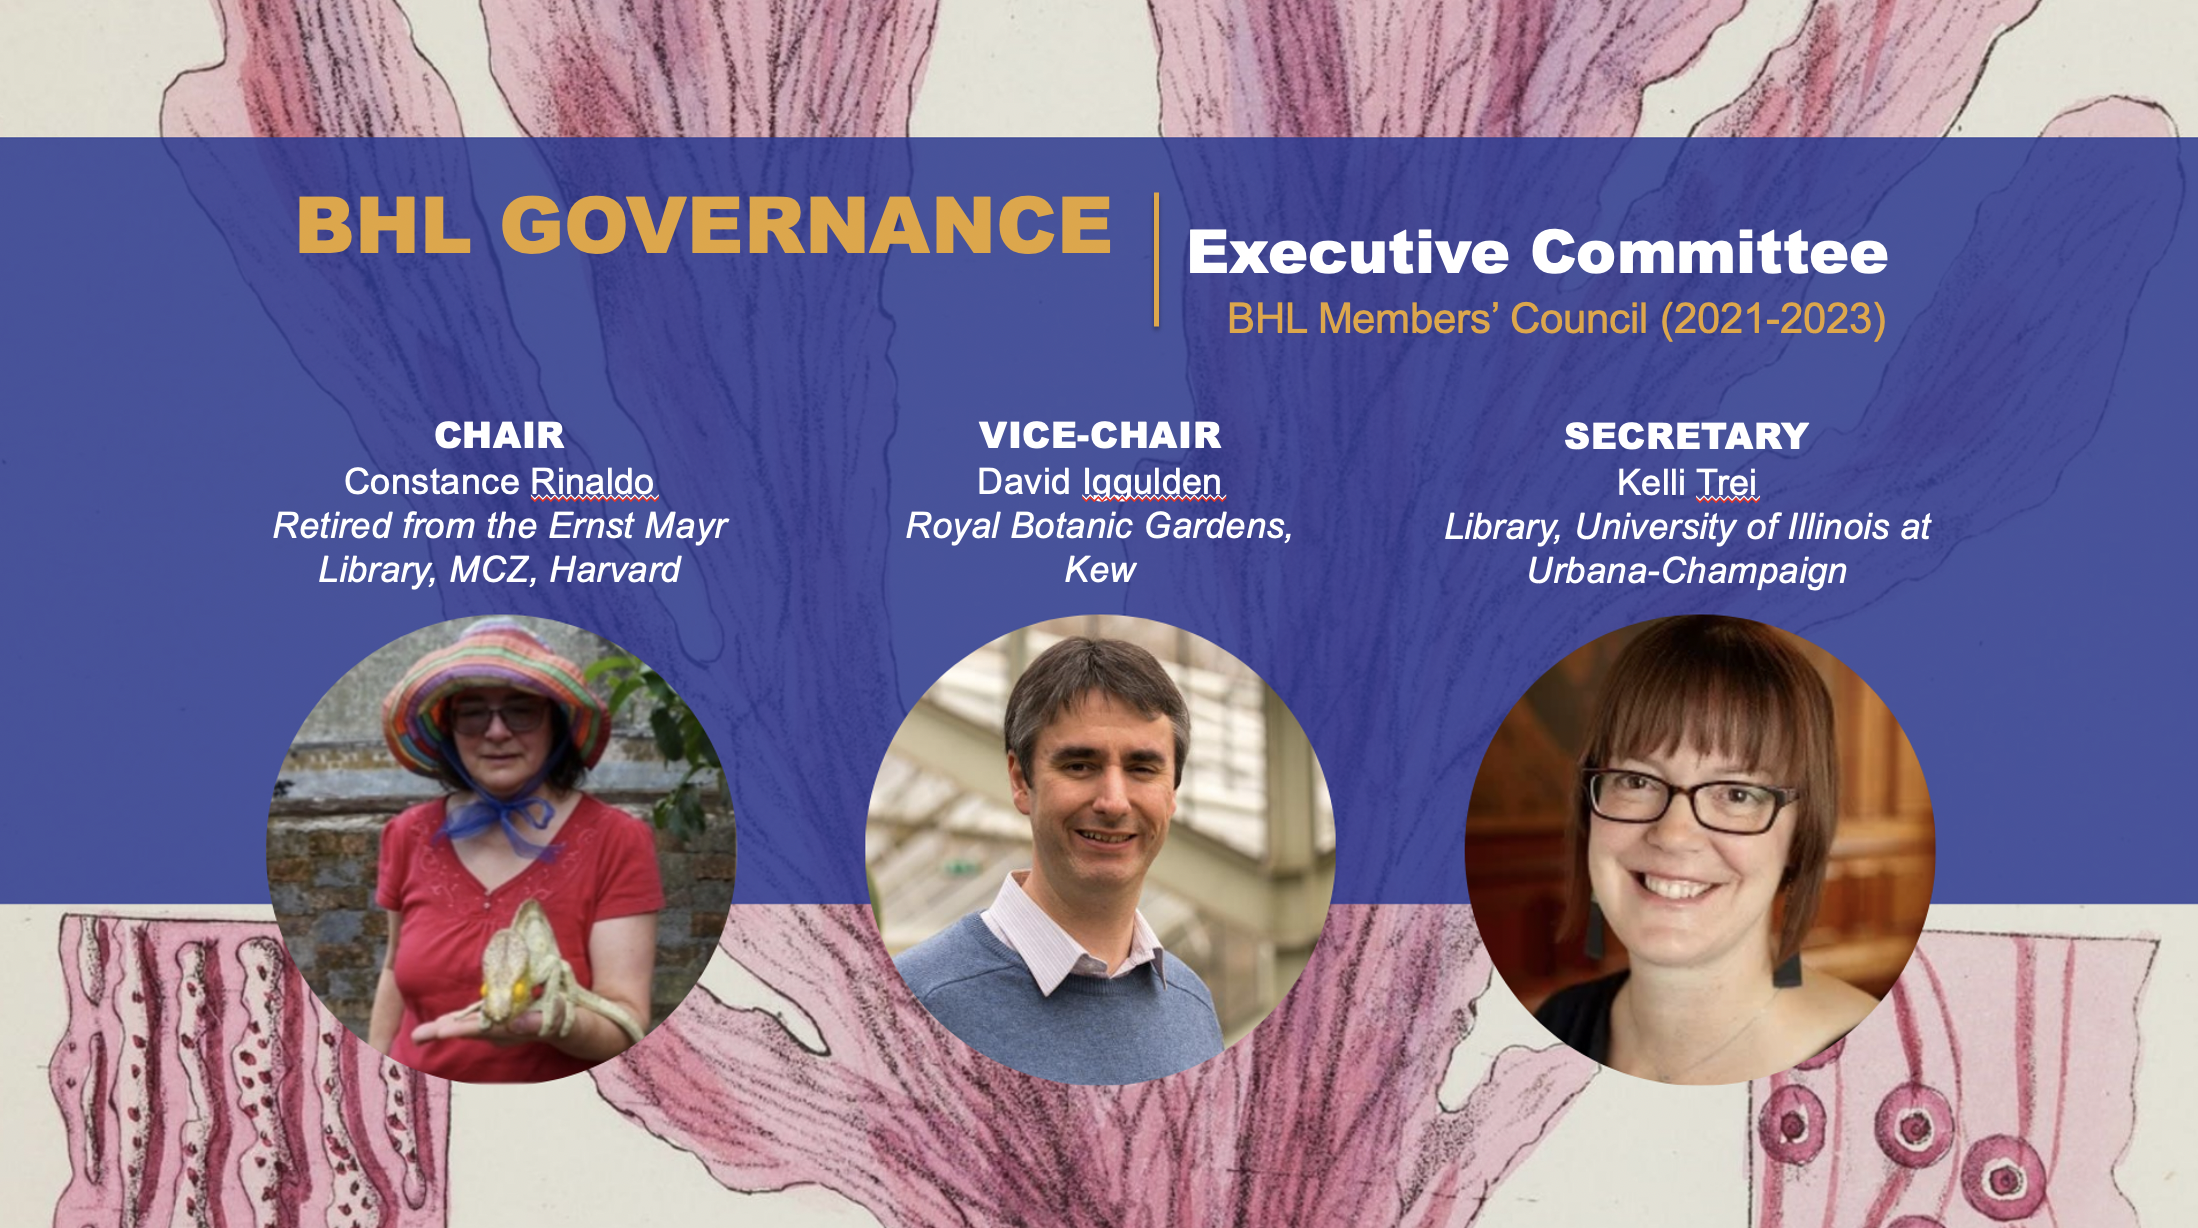 """Graphic with photos of two women and a man and the text """"BHL Governance: Executive Committee"""""""